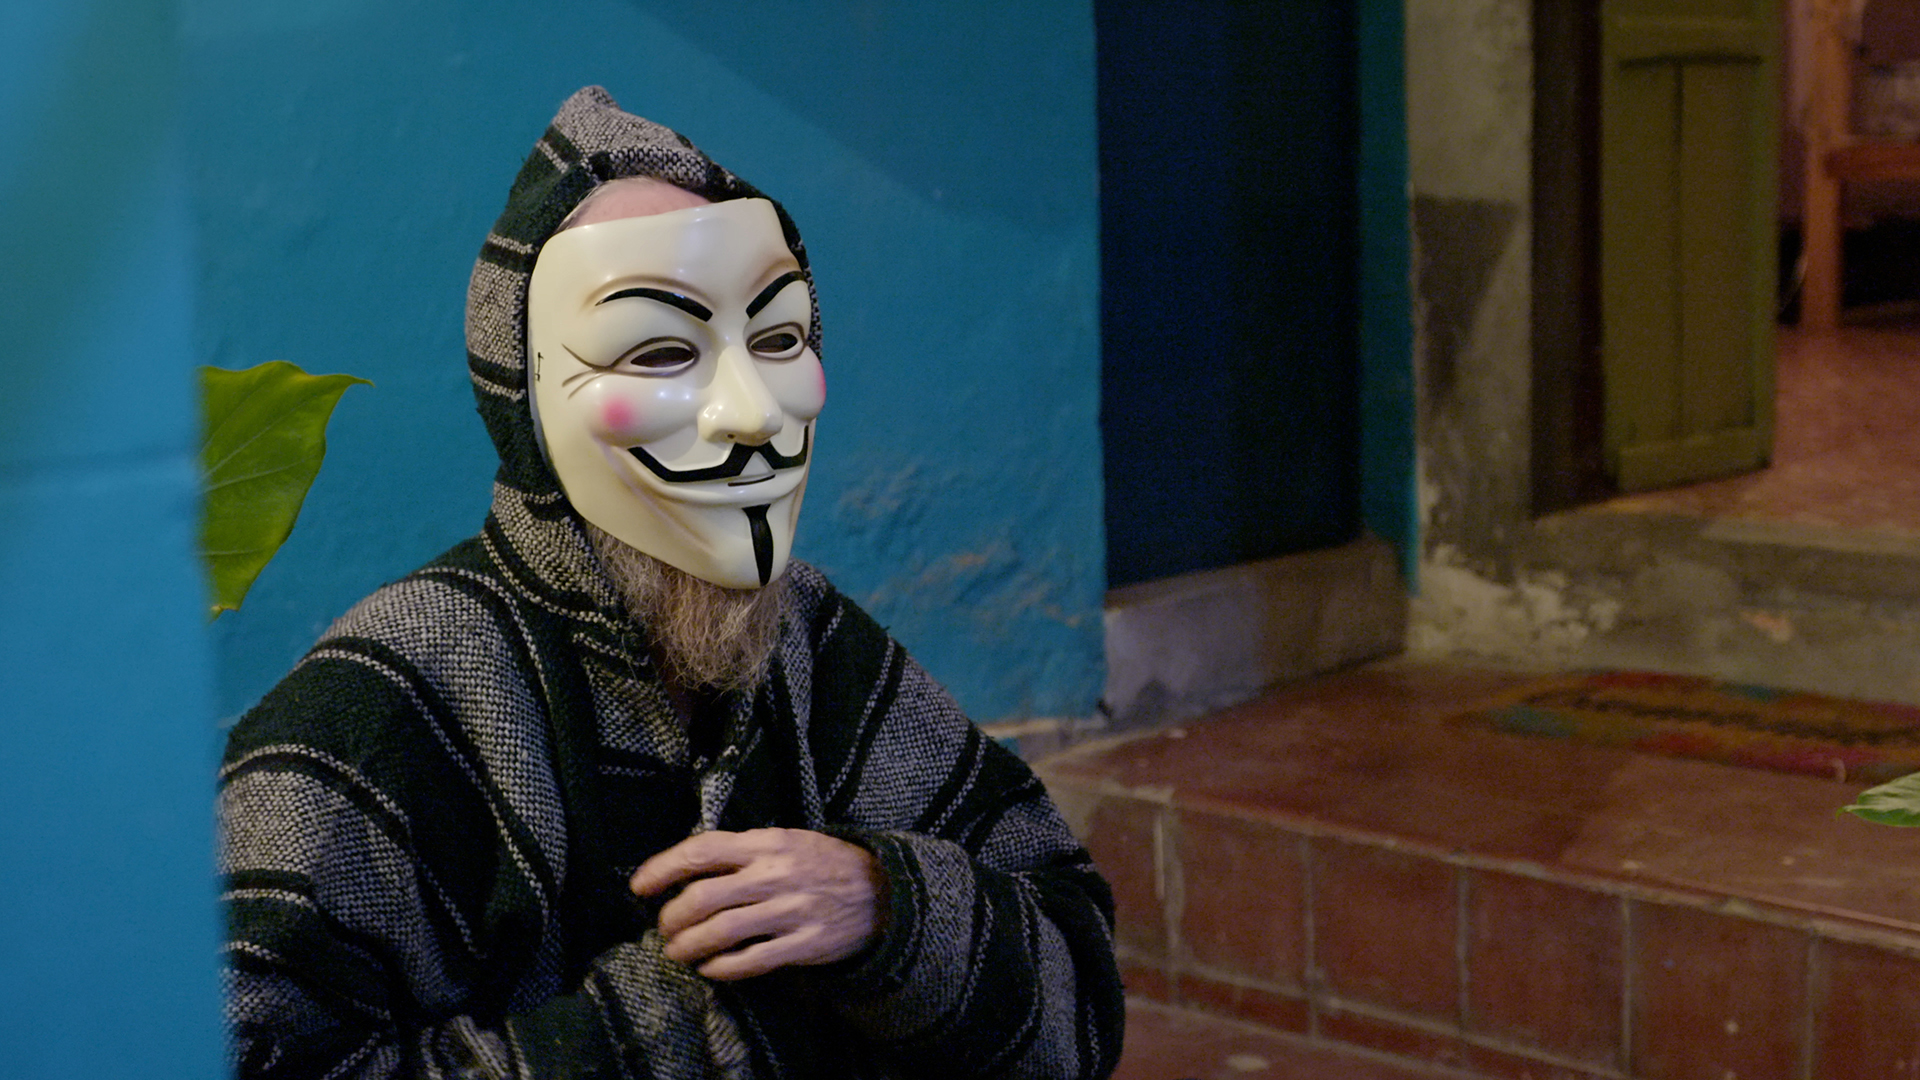 [Hot Docs] The Face of Anonymous — We are legion